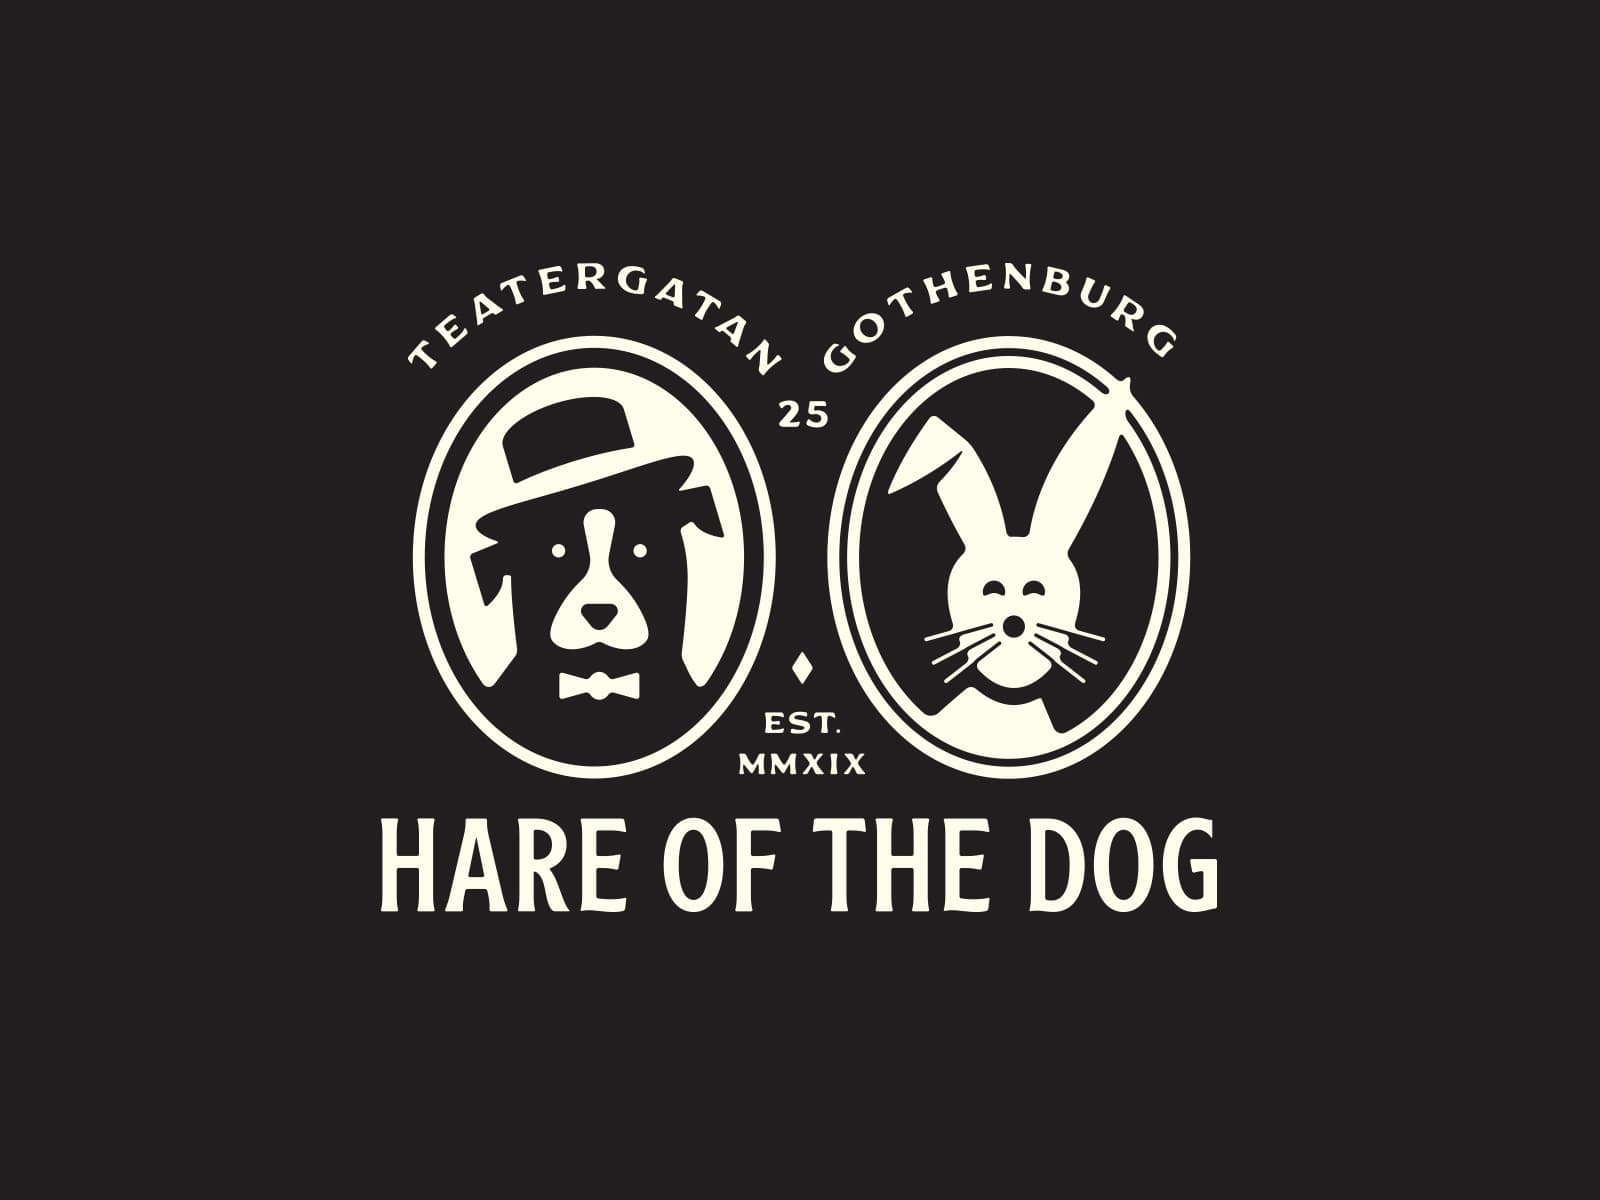 Hare of the Dog by Emir Ayouni